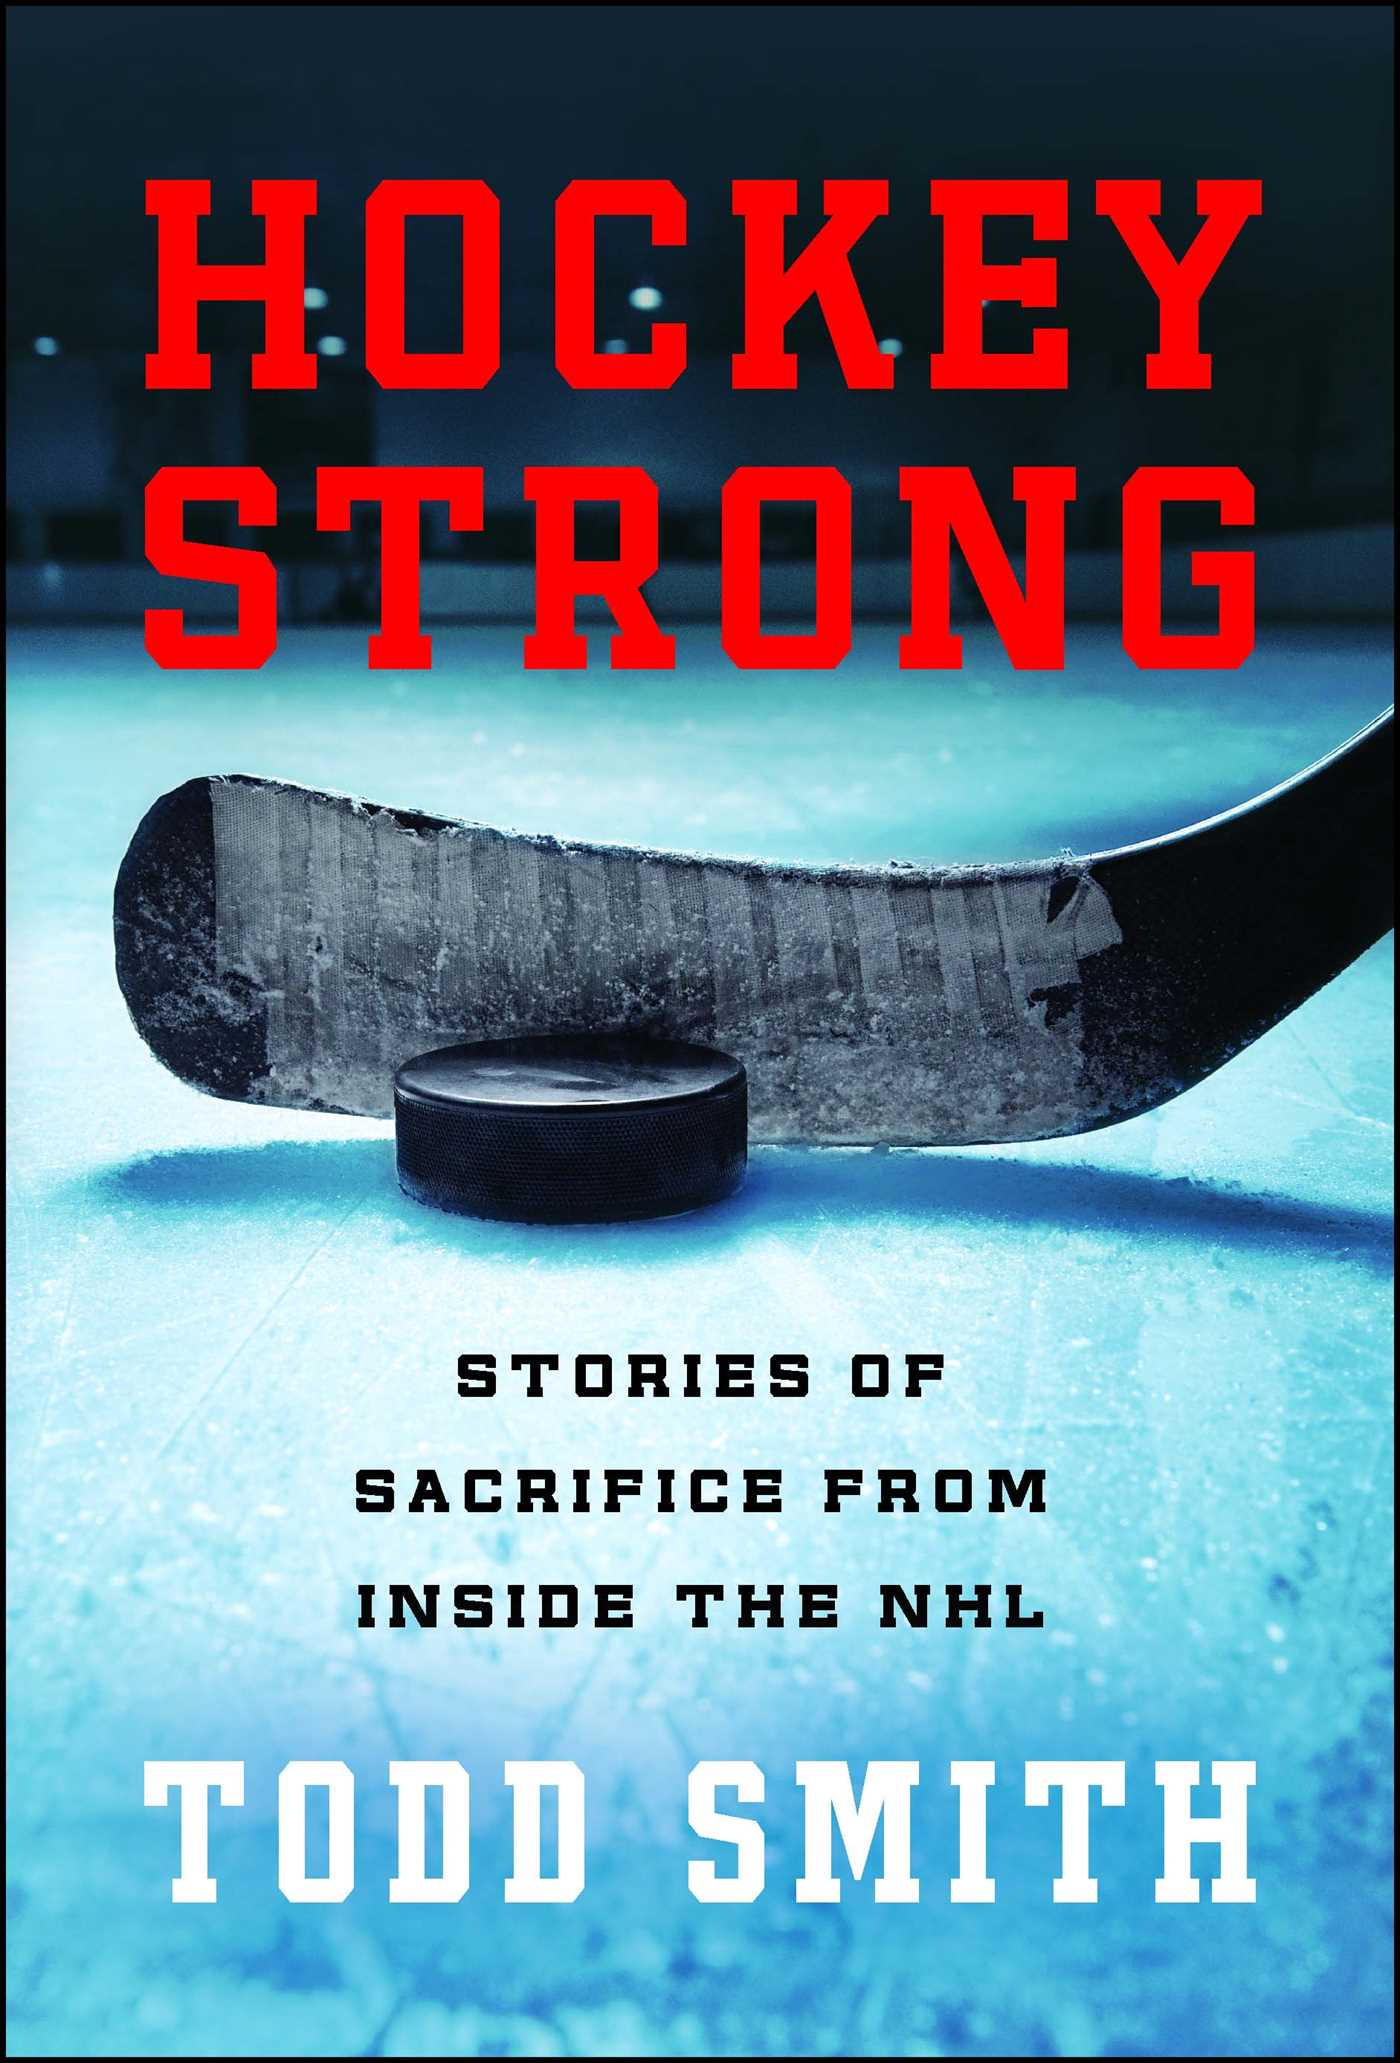 Hockey strong 9781501157233 hr